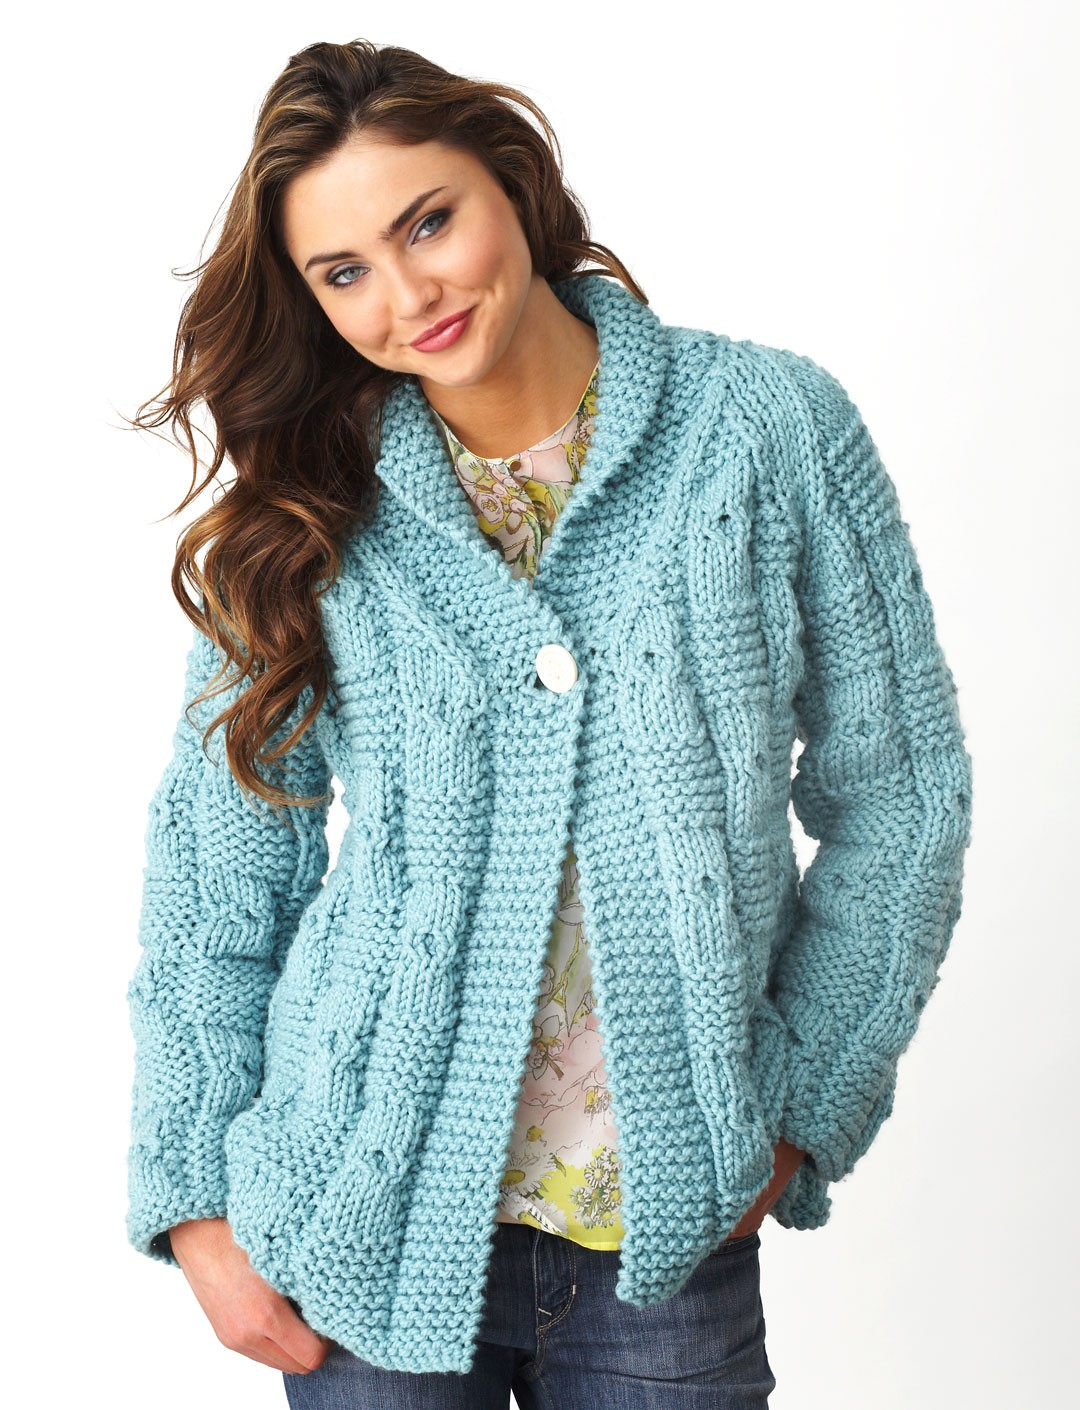 Women s Cardigan Knitting Pattern : Bernat Textured Checks Cardigan, Knit Pattern Yarnspirations